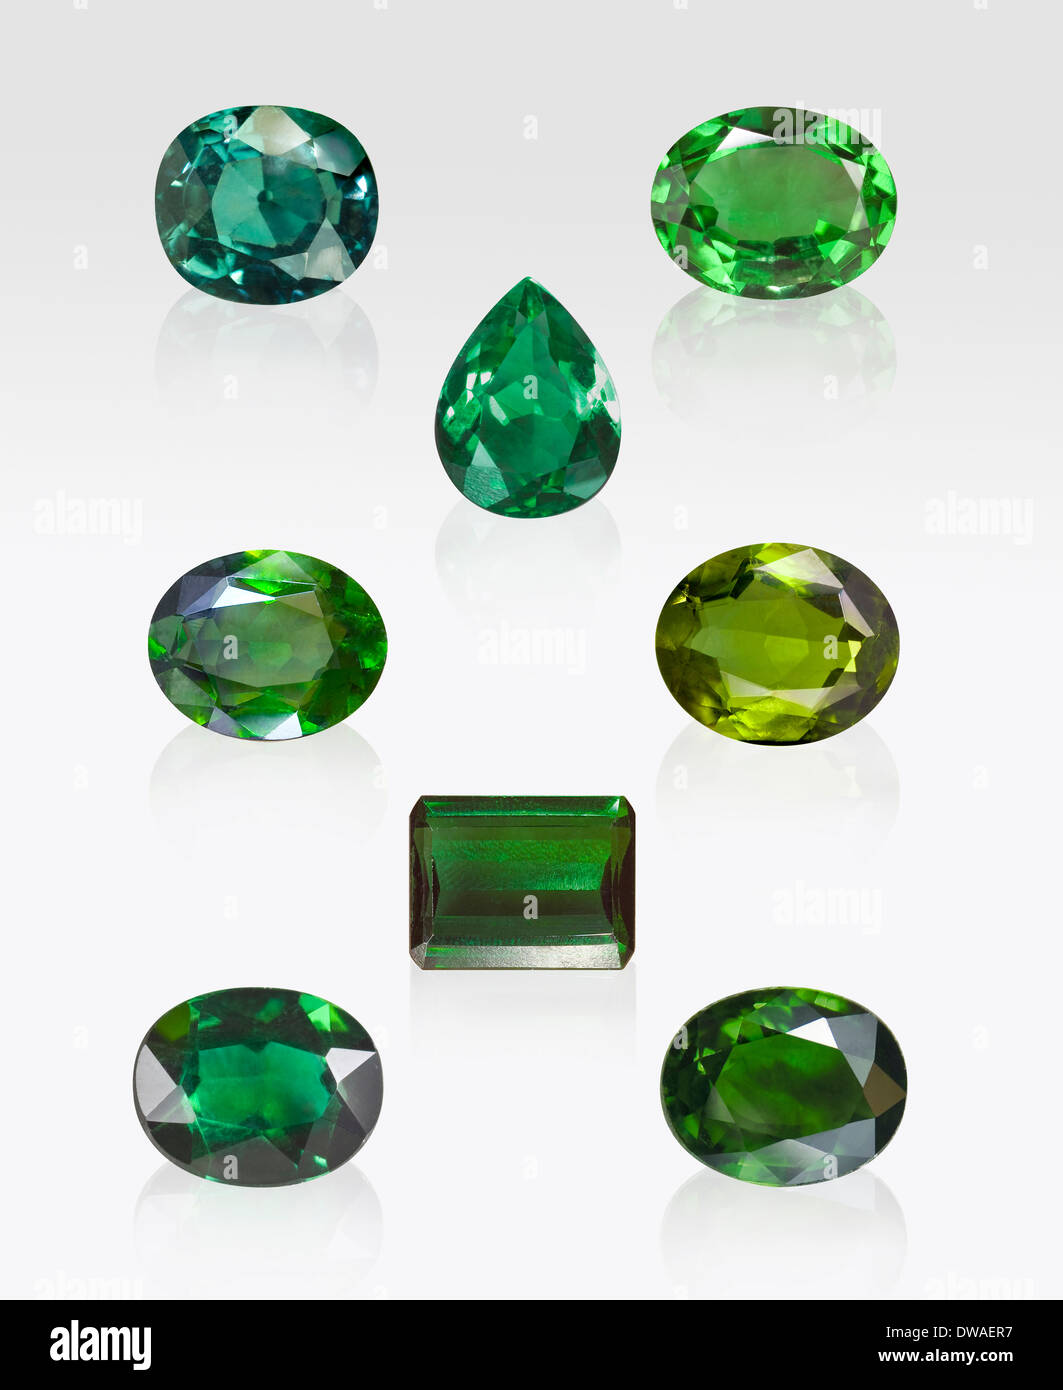 crop false rainbow article paulacrevoshaytourmaline scale the tourmaline jewellery that upscale touched subsampling a gemstone editor